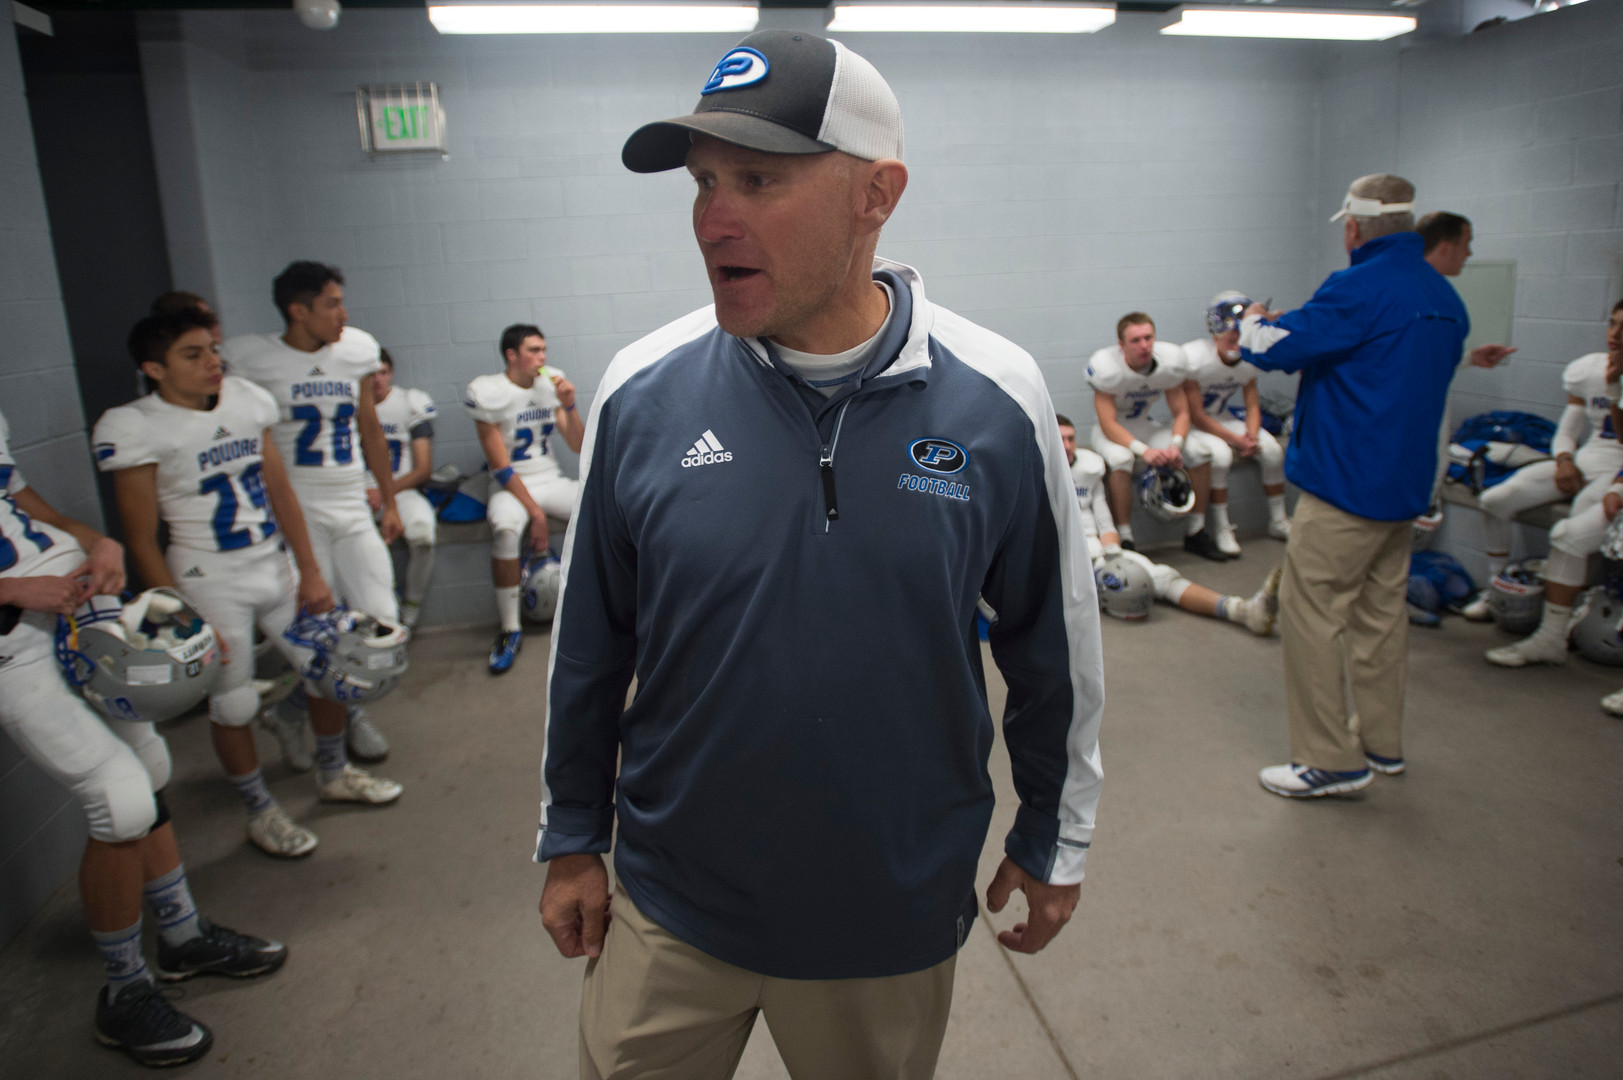 8:04 p.m. - Poudre High School football coach Marty McVicker briefs the team during half time in a game against Legend at EchoPark Stadium in Parker Thursday, October 13, 2016.